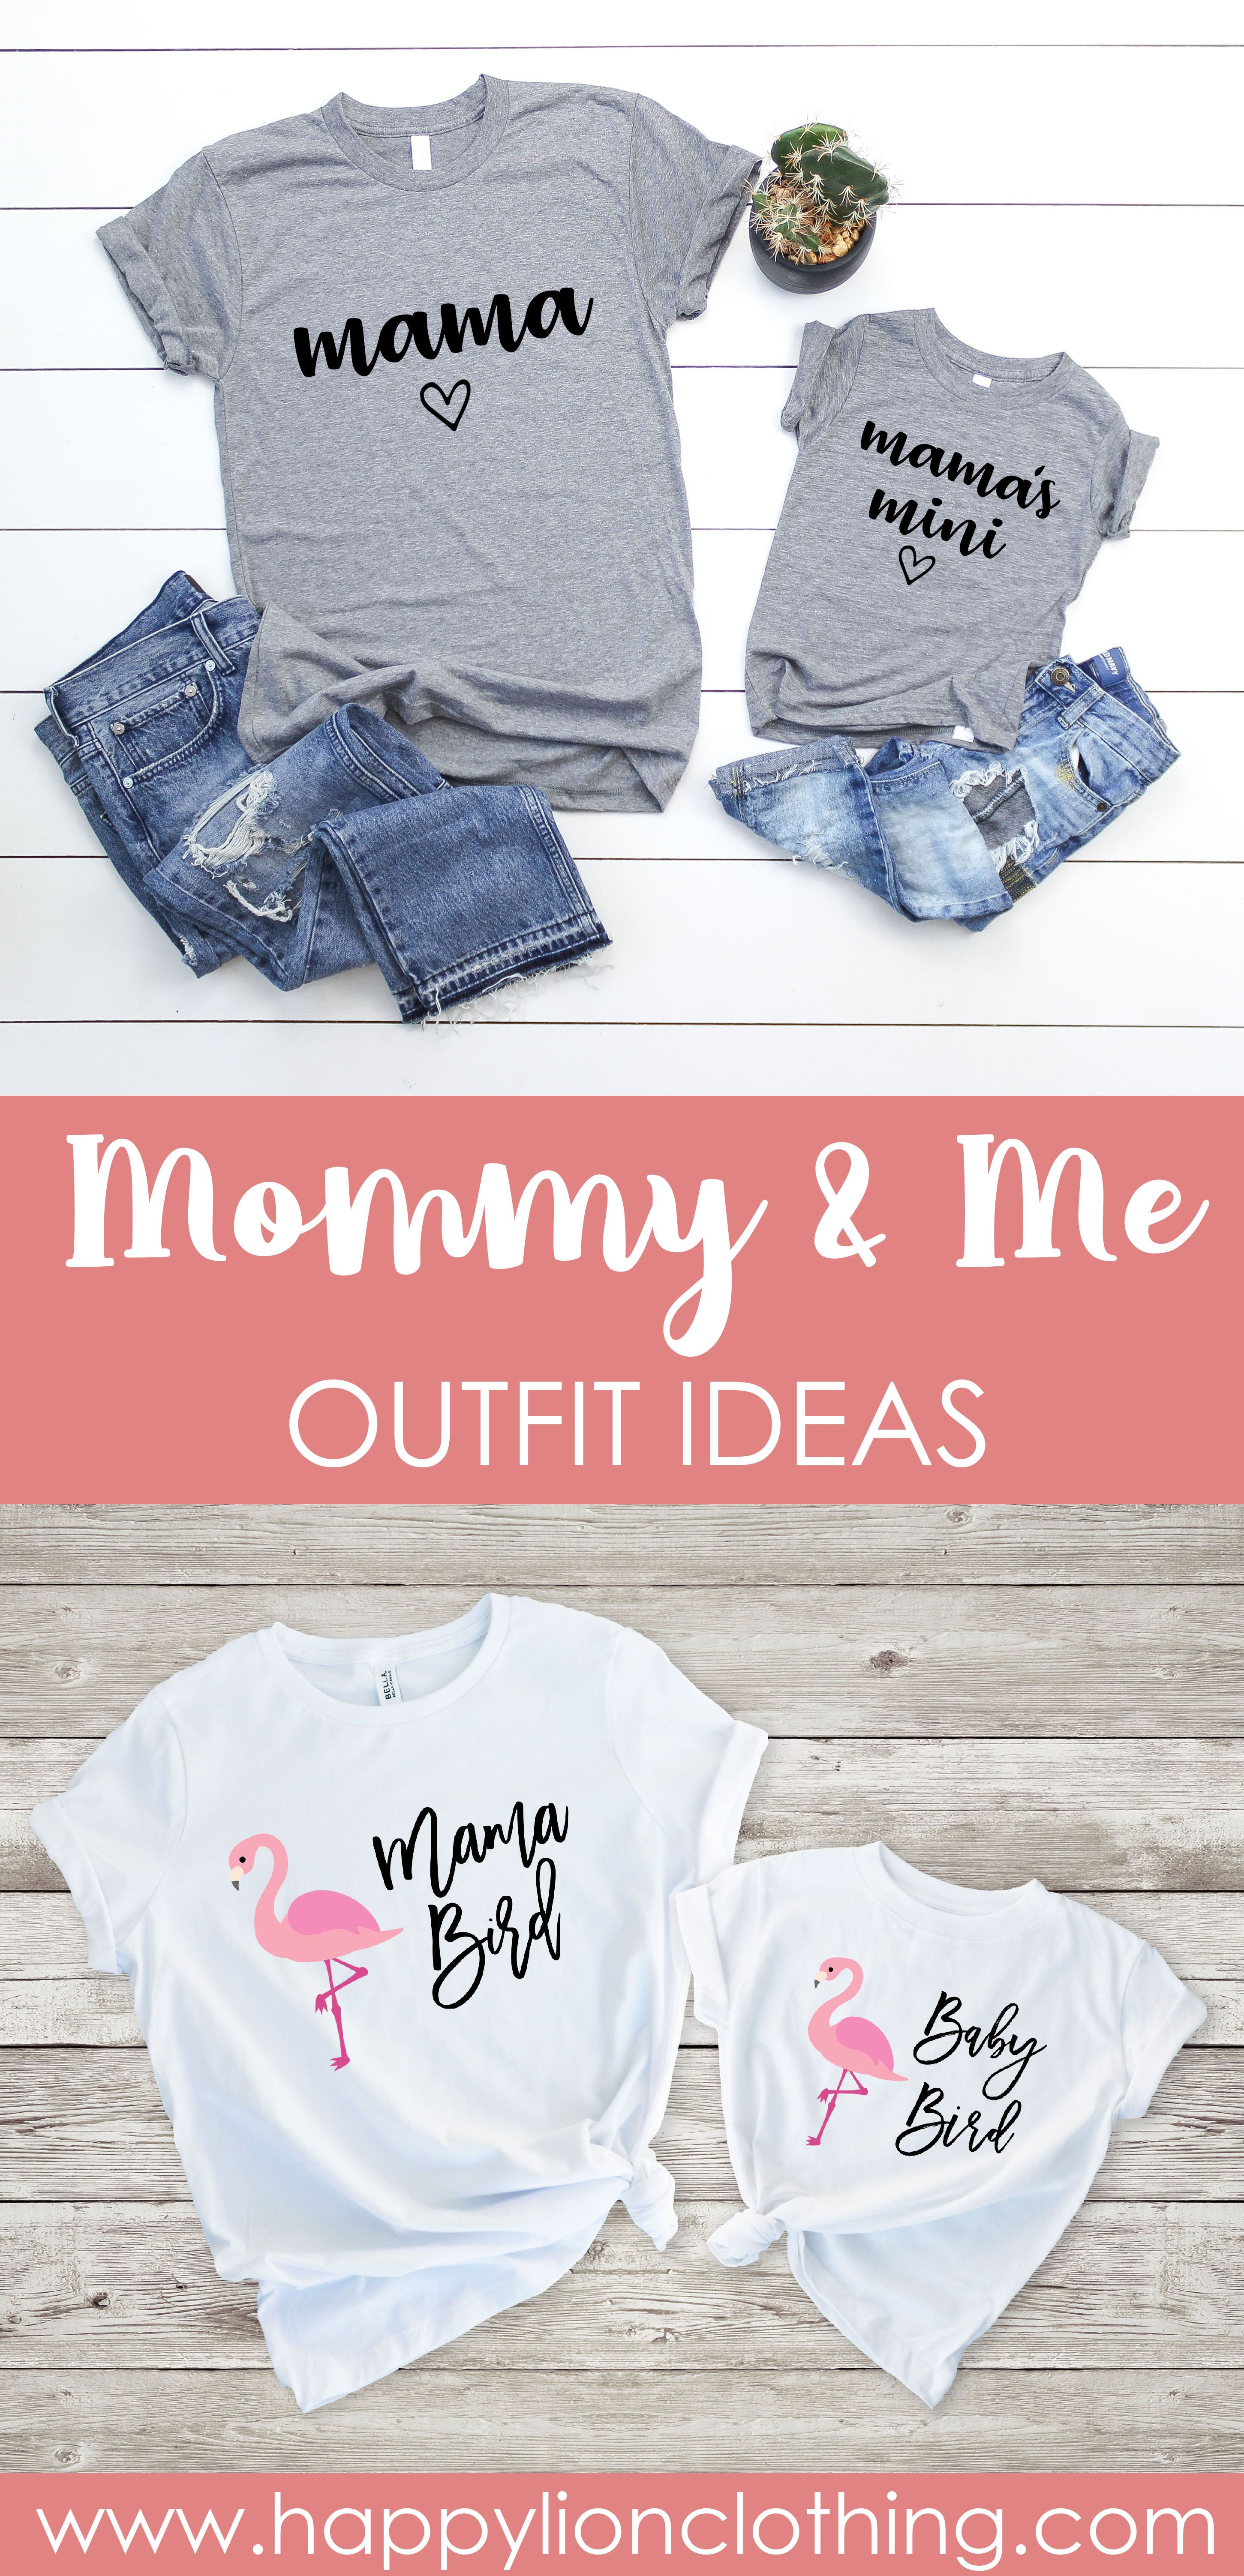 Shop for the perfect mother and daughter shirt sets out of our Mommy